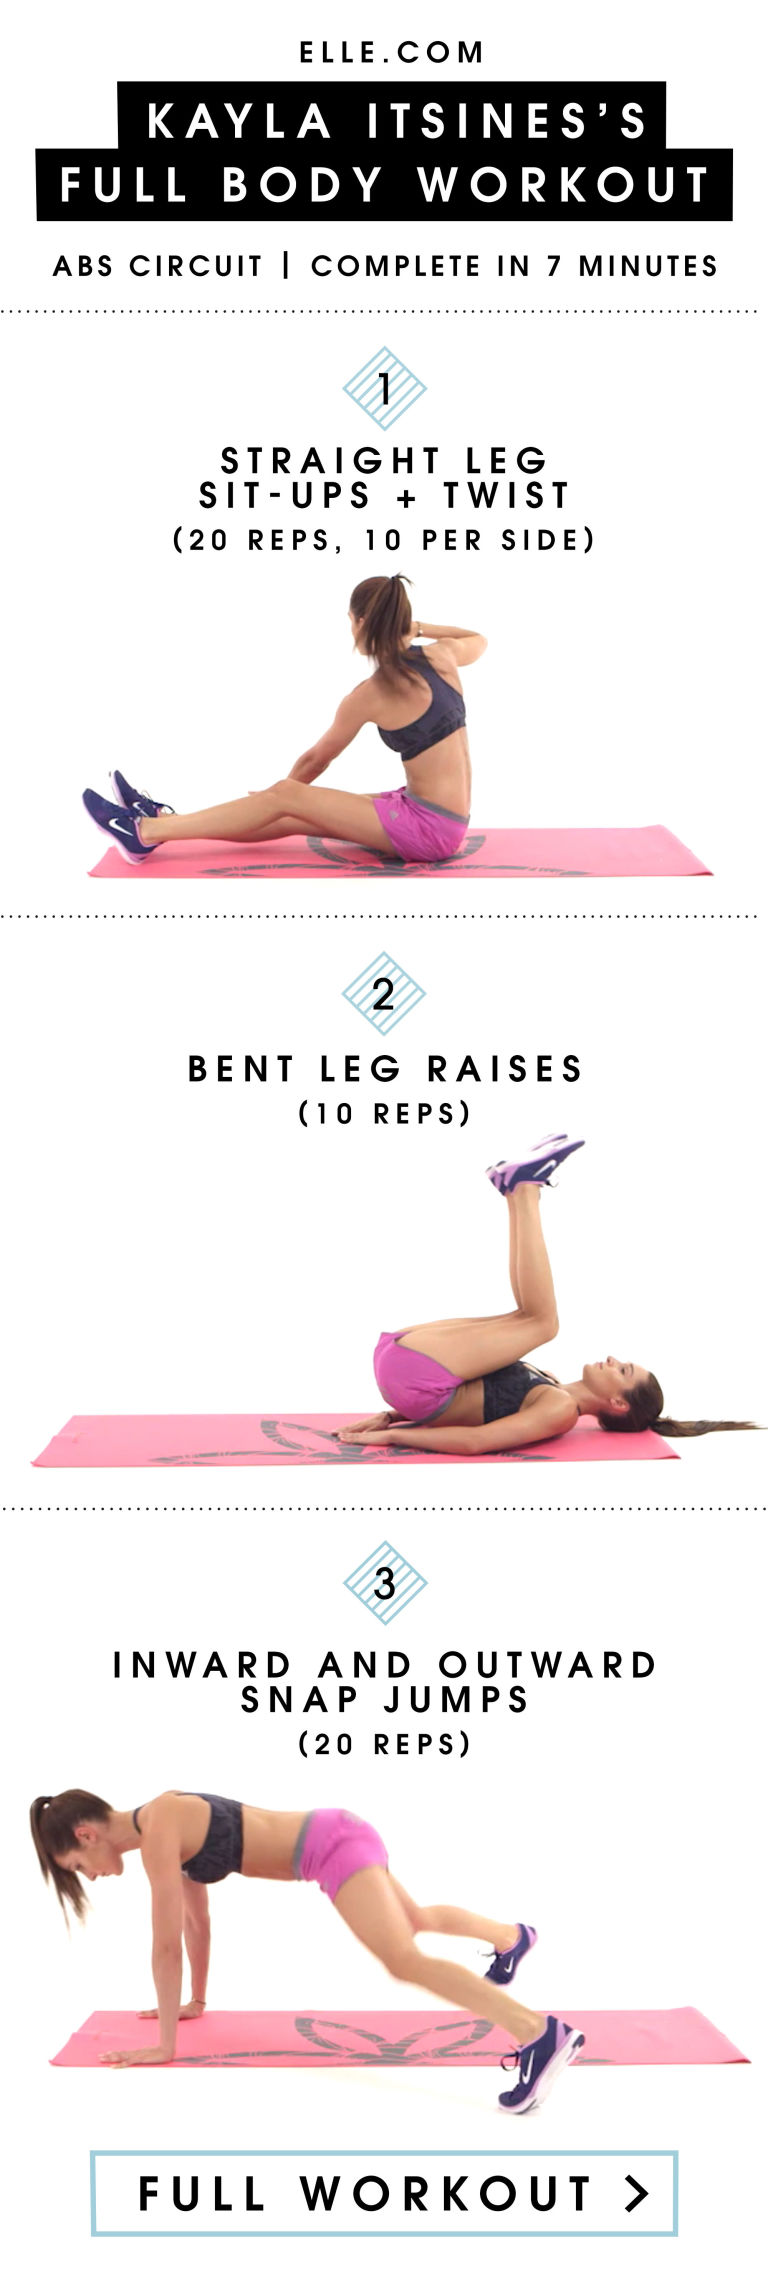 How To Get Instagramworthy Abs In 3 Moves  Kayla Itsines Bikini Body  Guide Abs Workout